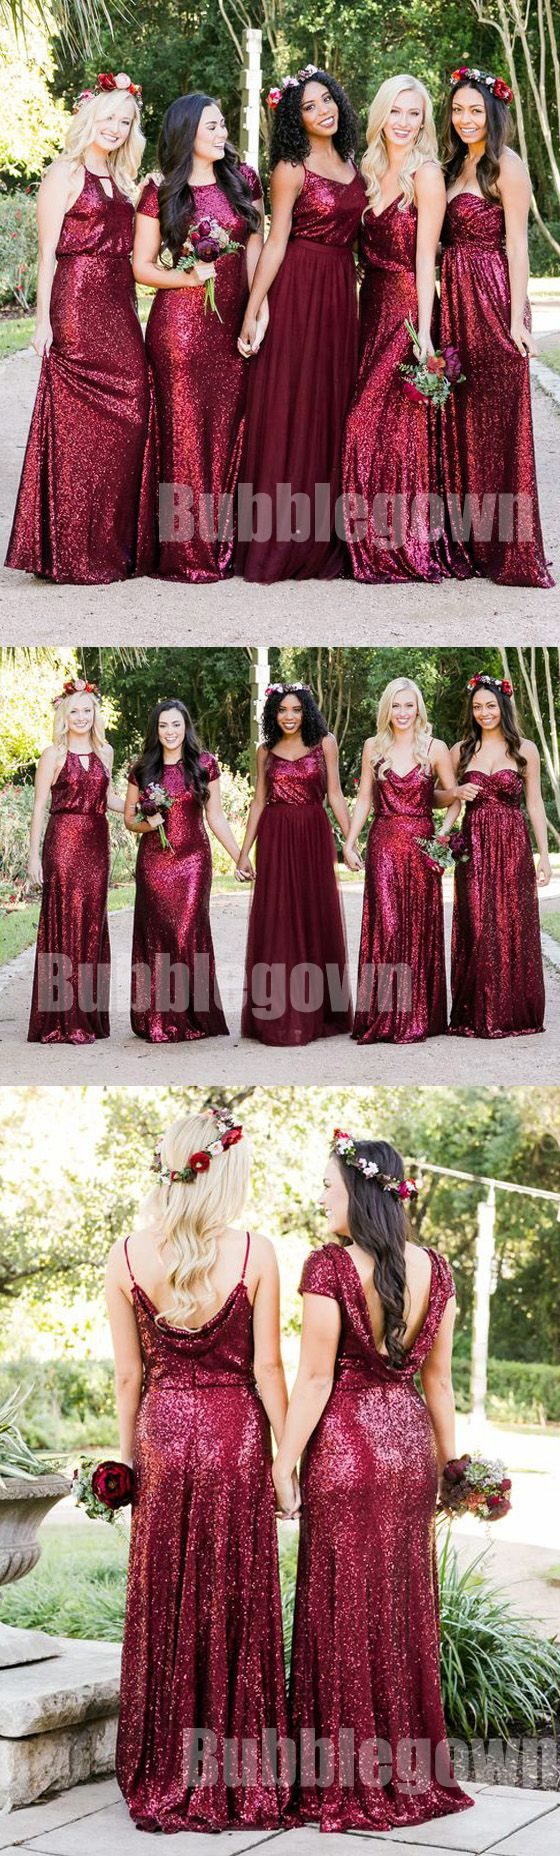 Popular Elegant Mismatched Sequin Tulle Long Wedding Party Bridesmaid Dresses, BD010 #bridesmaids #weddingpartydress